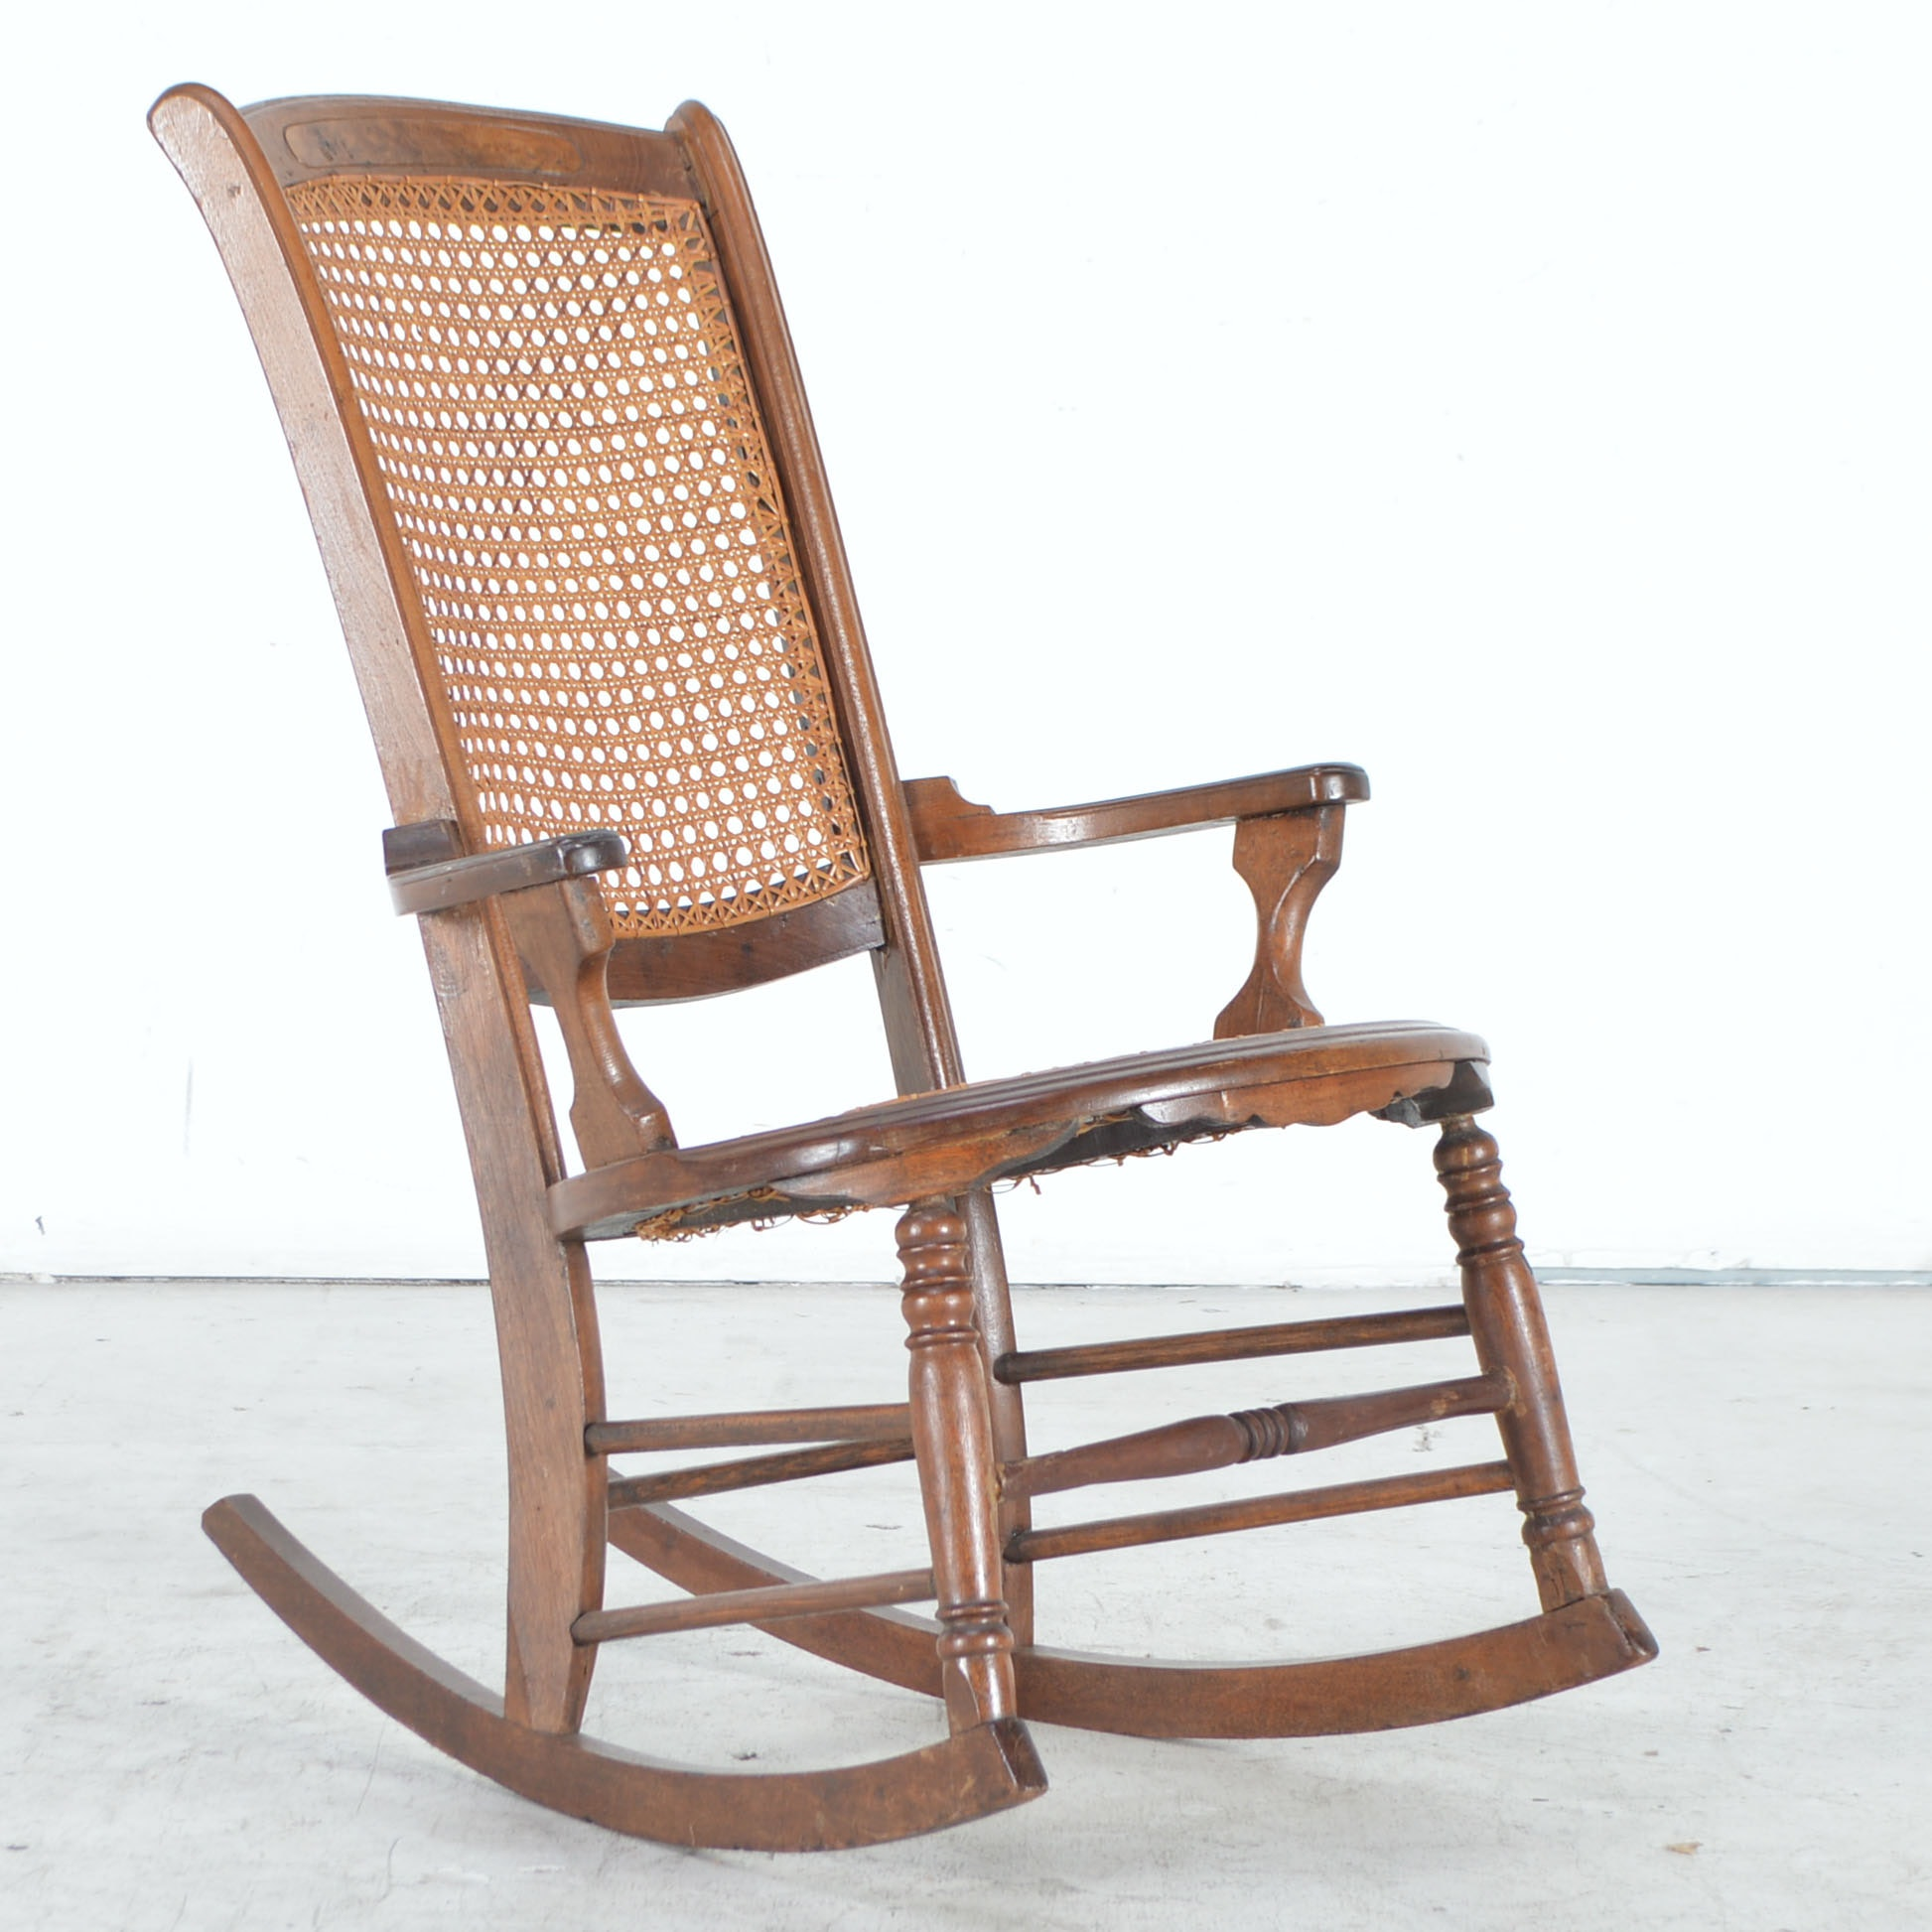 Antique Walnut Rocking Chair with Caned Back and Seat ...  sc 1 st  EBTH.com & Antique Walnut Rocking Chair with Caned Back and Seat : EBTH